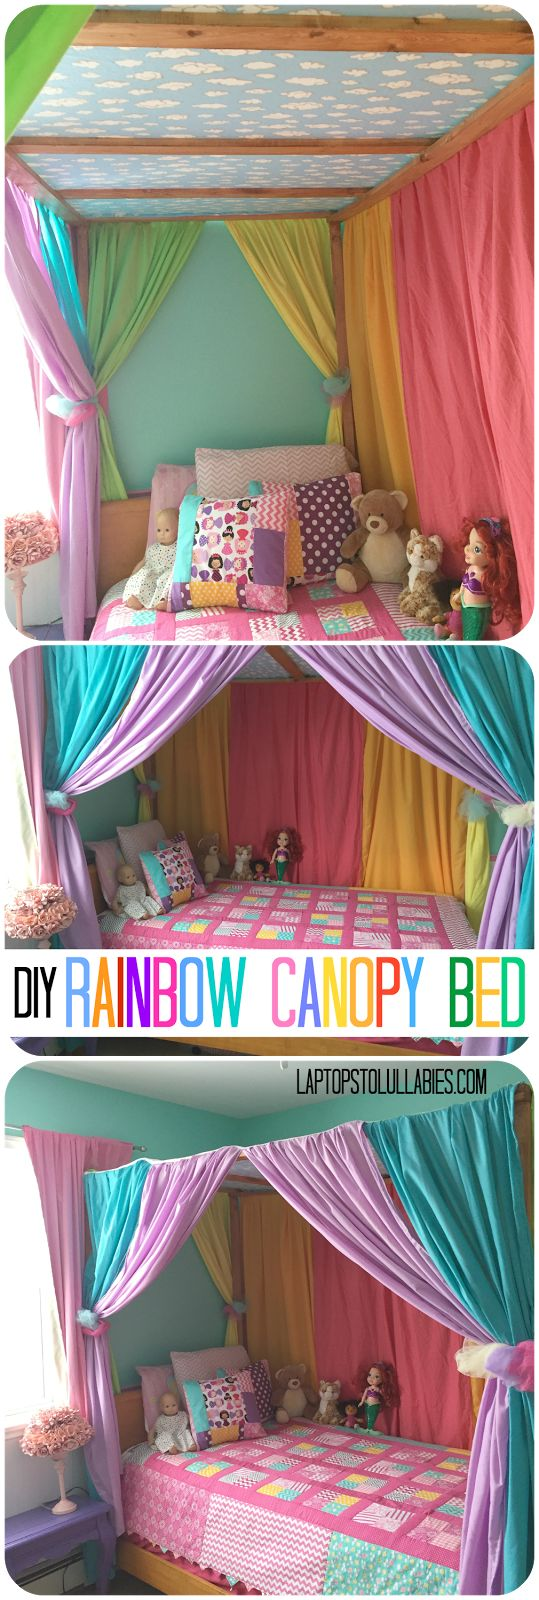 Girls bed canopy ideas - 17 Best Ideas About Girls Canopy Beds On Pinterest Canopy Beds For Girls Canopy For Bed And Canopy Beds